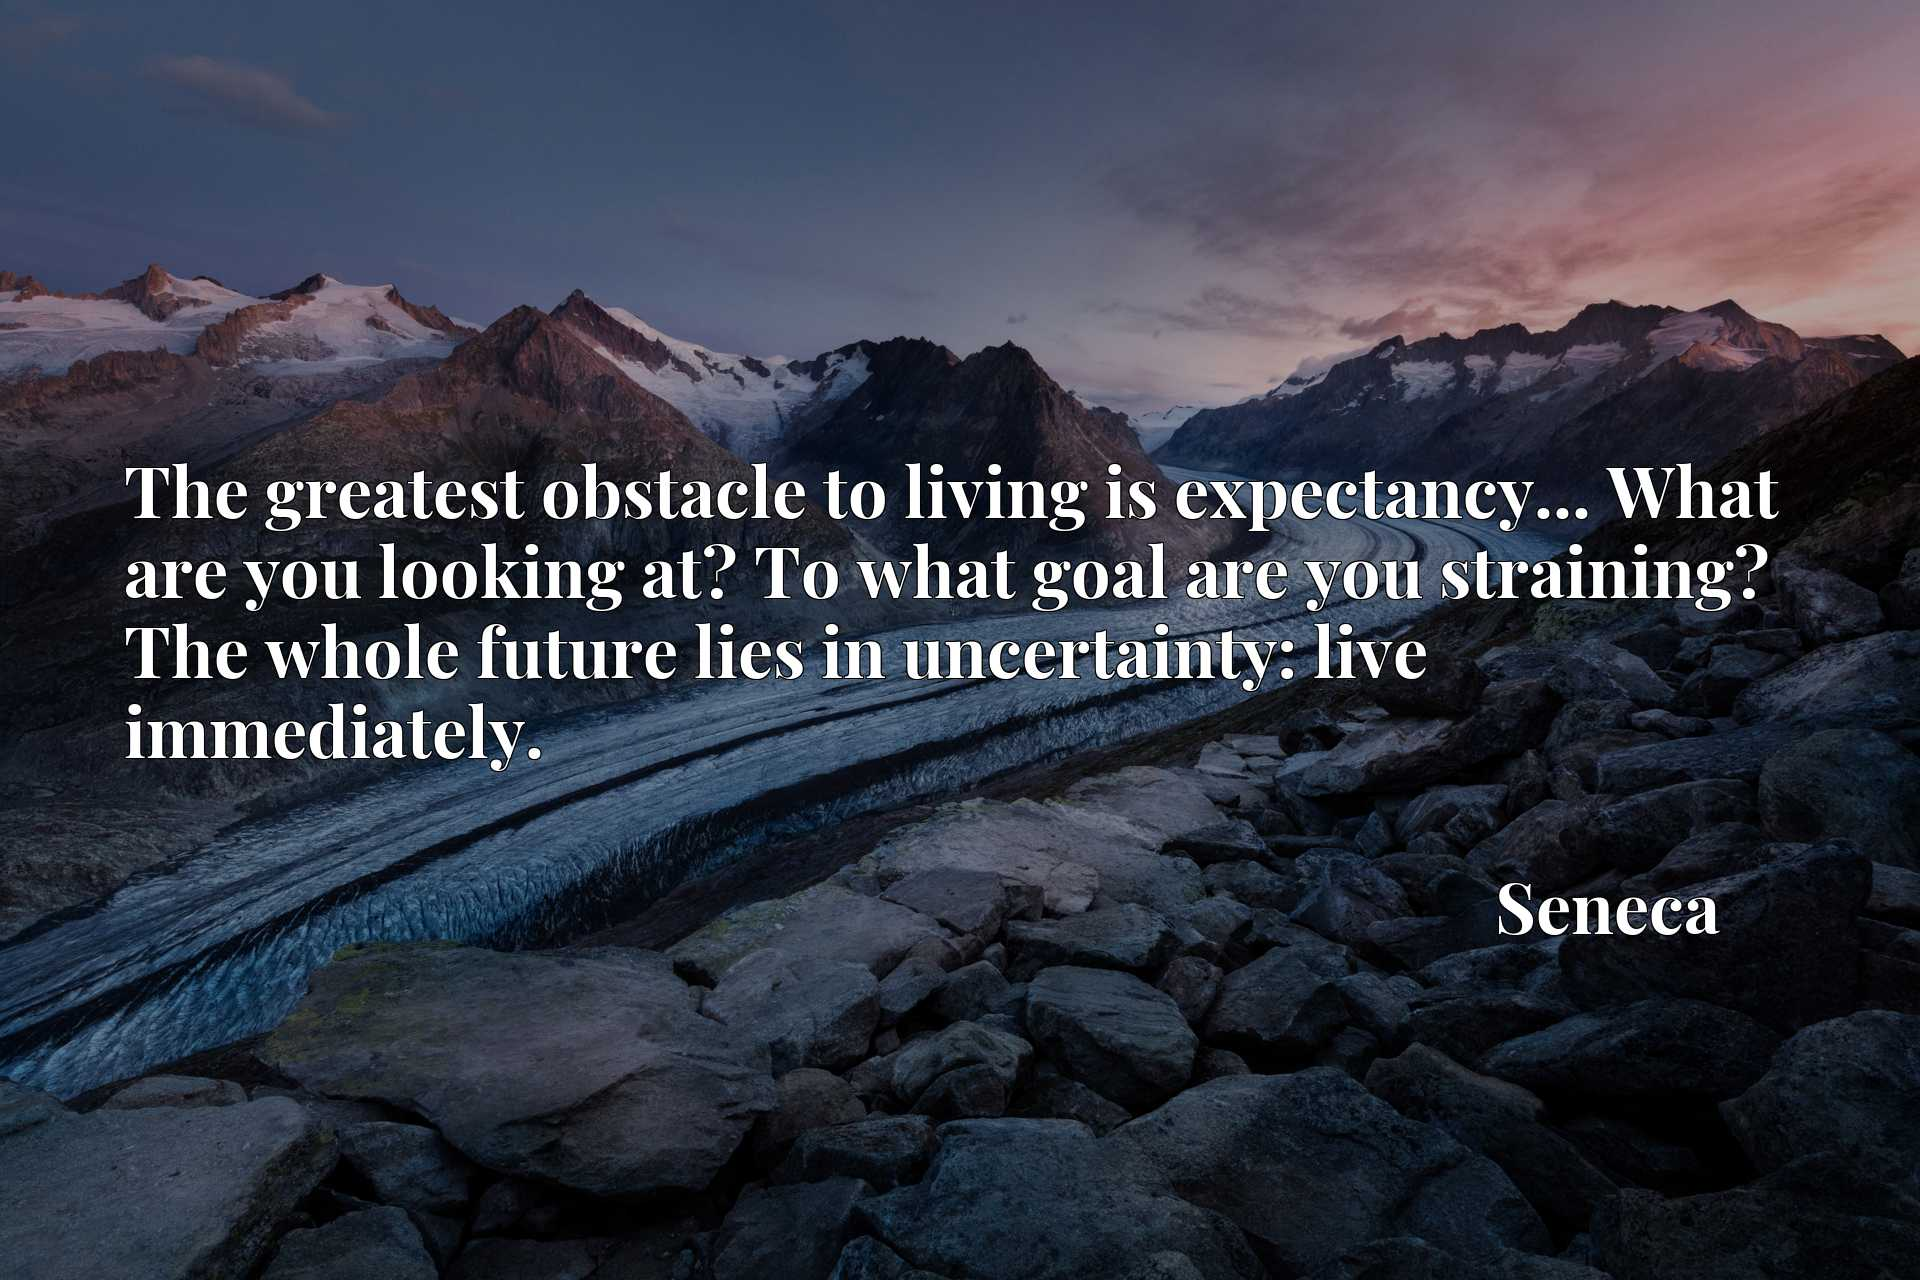 Quote Picture :The greatest obstacle to living is expectancy... What are you looking at? To what goal are you straining? The whole future lies in uncertainty: live immediately.